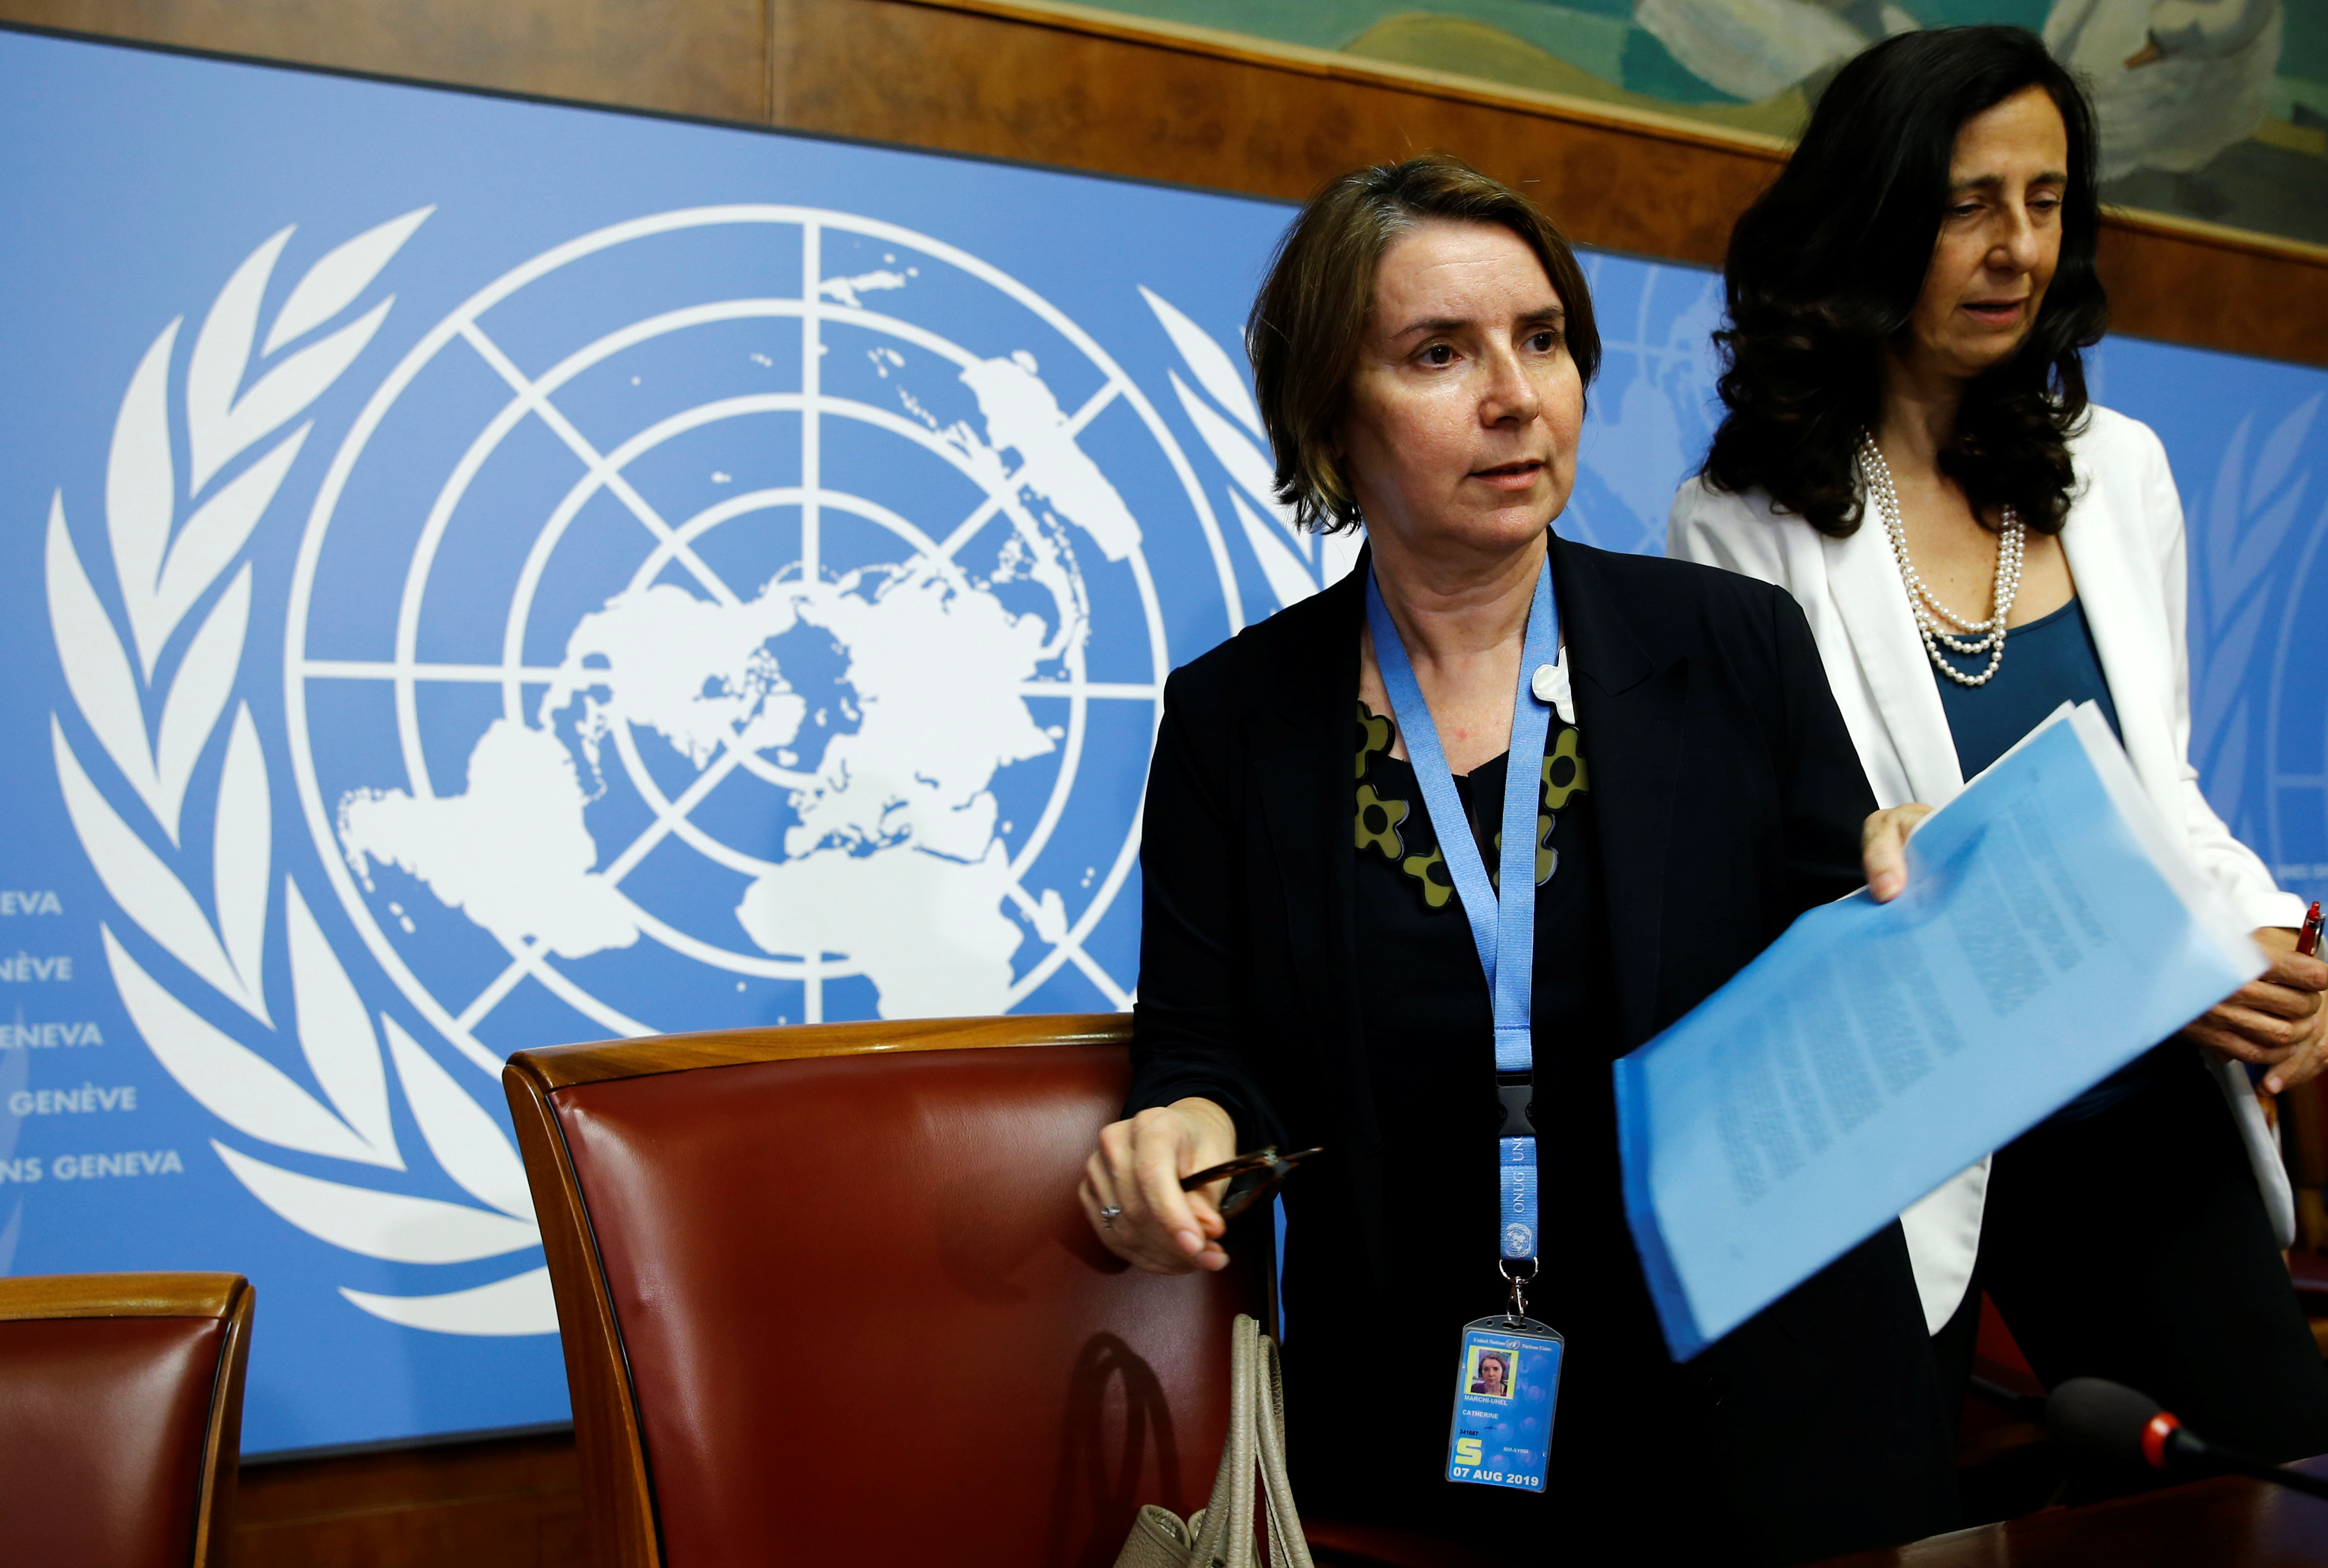 Catherine Marchi-Uhel of France, newly-appointed head of the International, Impartial and Independent Mechanism (IIIM) attends a news conference on Syria crimes at the United Nations in Geneva, Switzerland September 5, 2017. REUTERS/Denis Balibouse